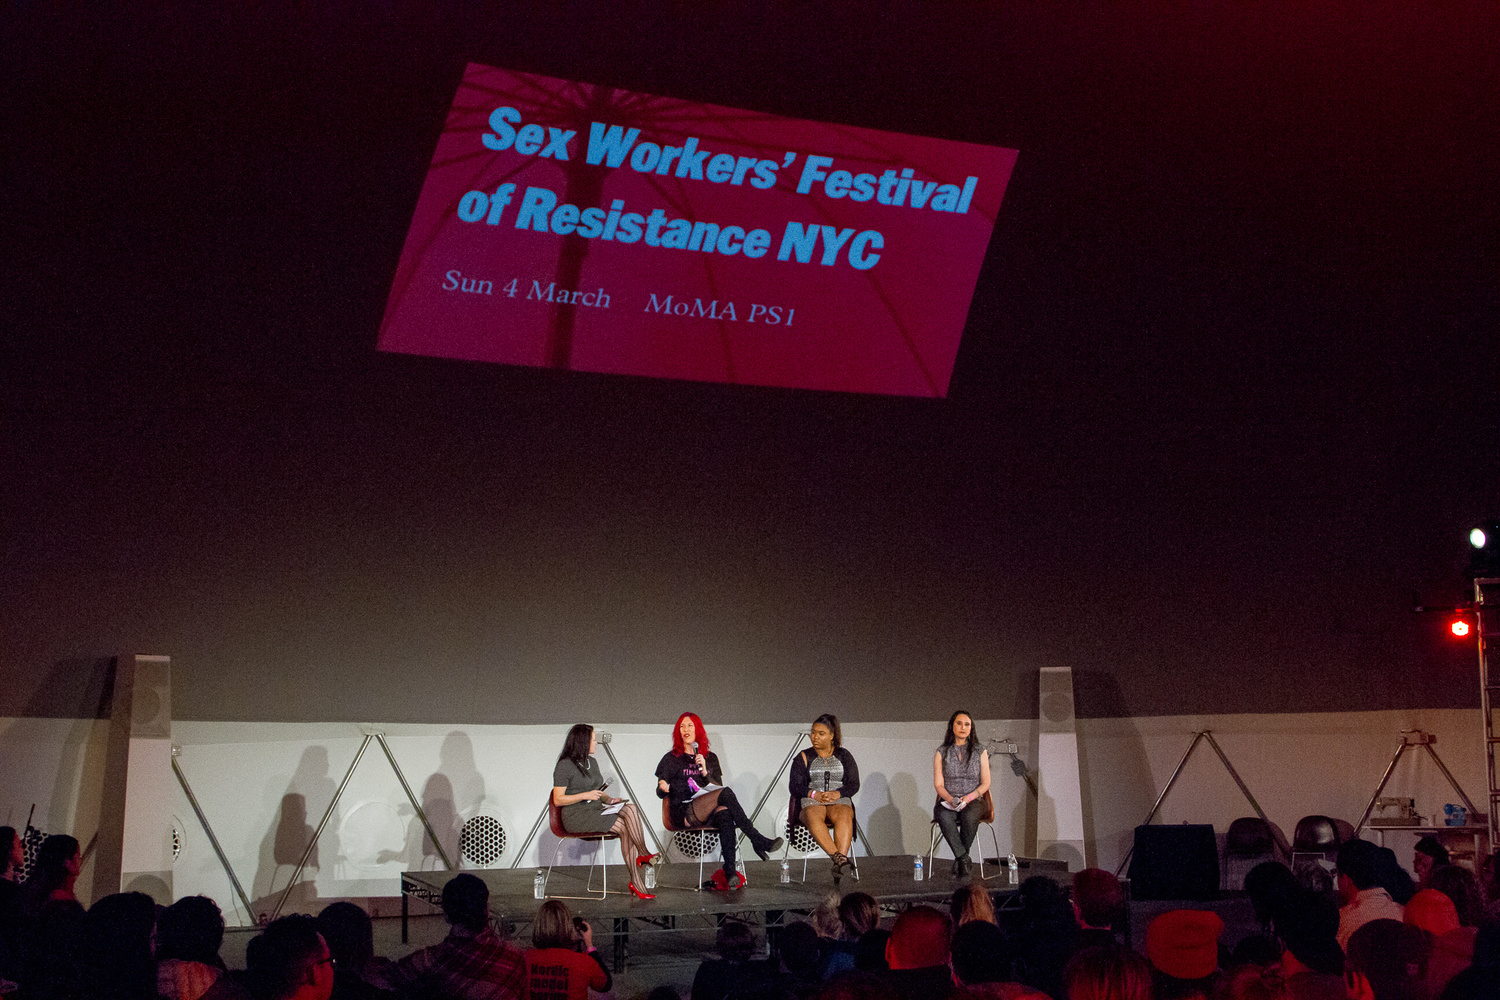 Sex Workers' Festival of Resistance on March 4, 2018. Presented at MoMA PS1 as part of VW Sunday Sessions 2017-2018. Photography: Derek Schultz.